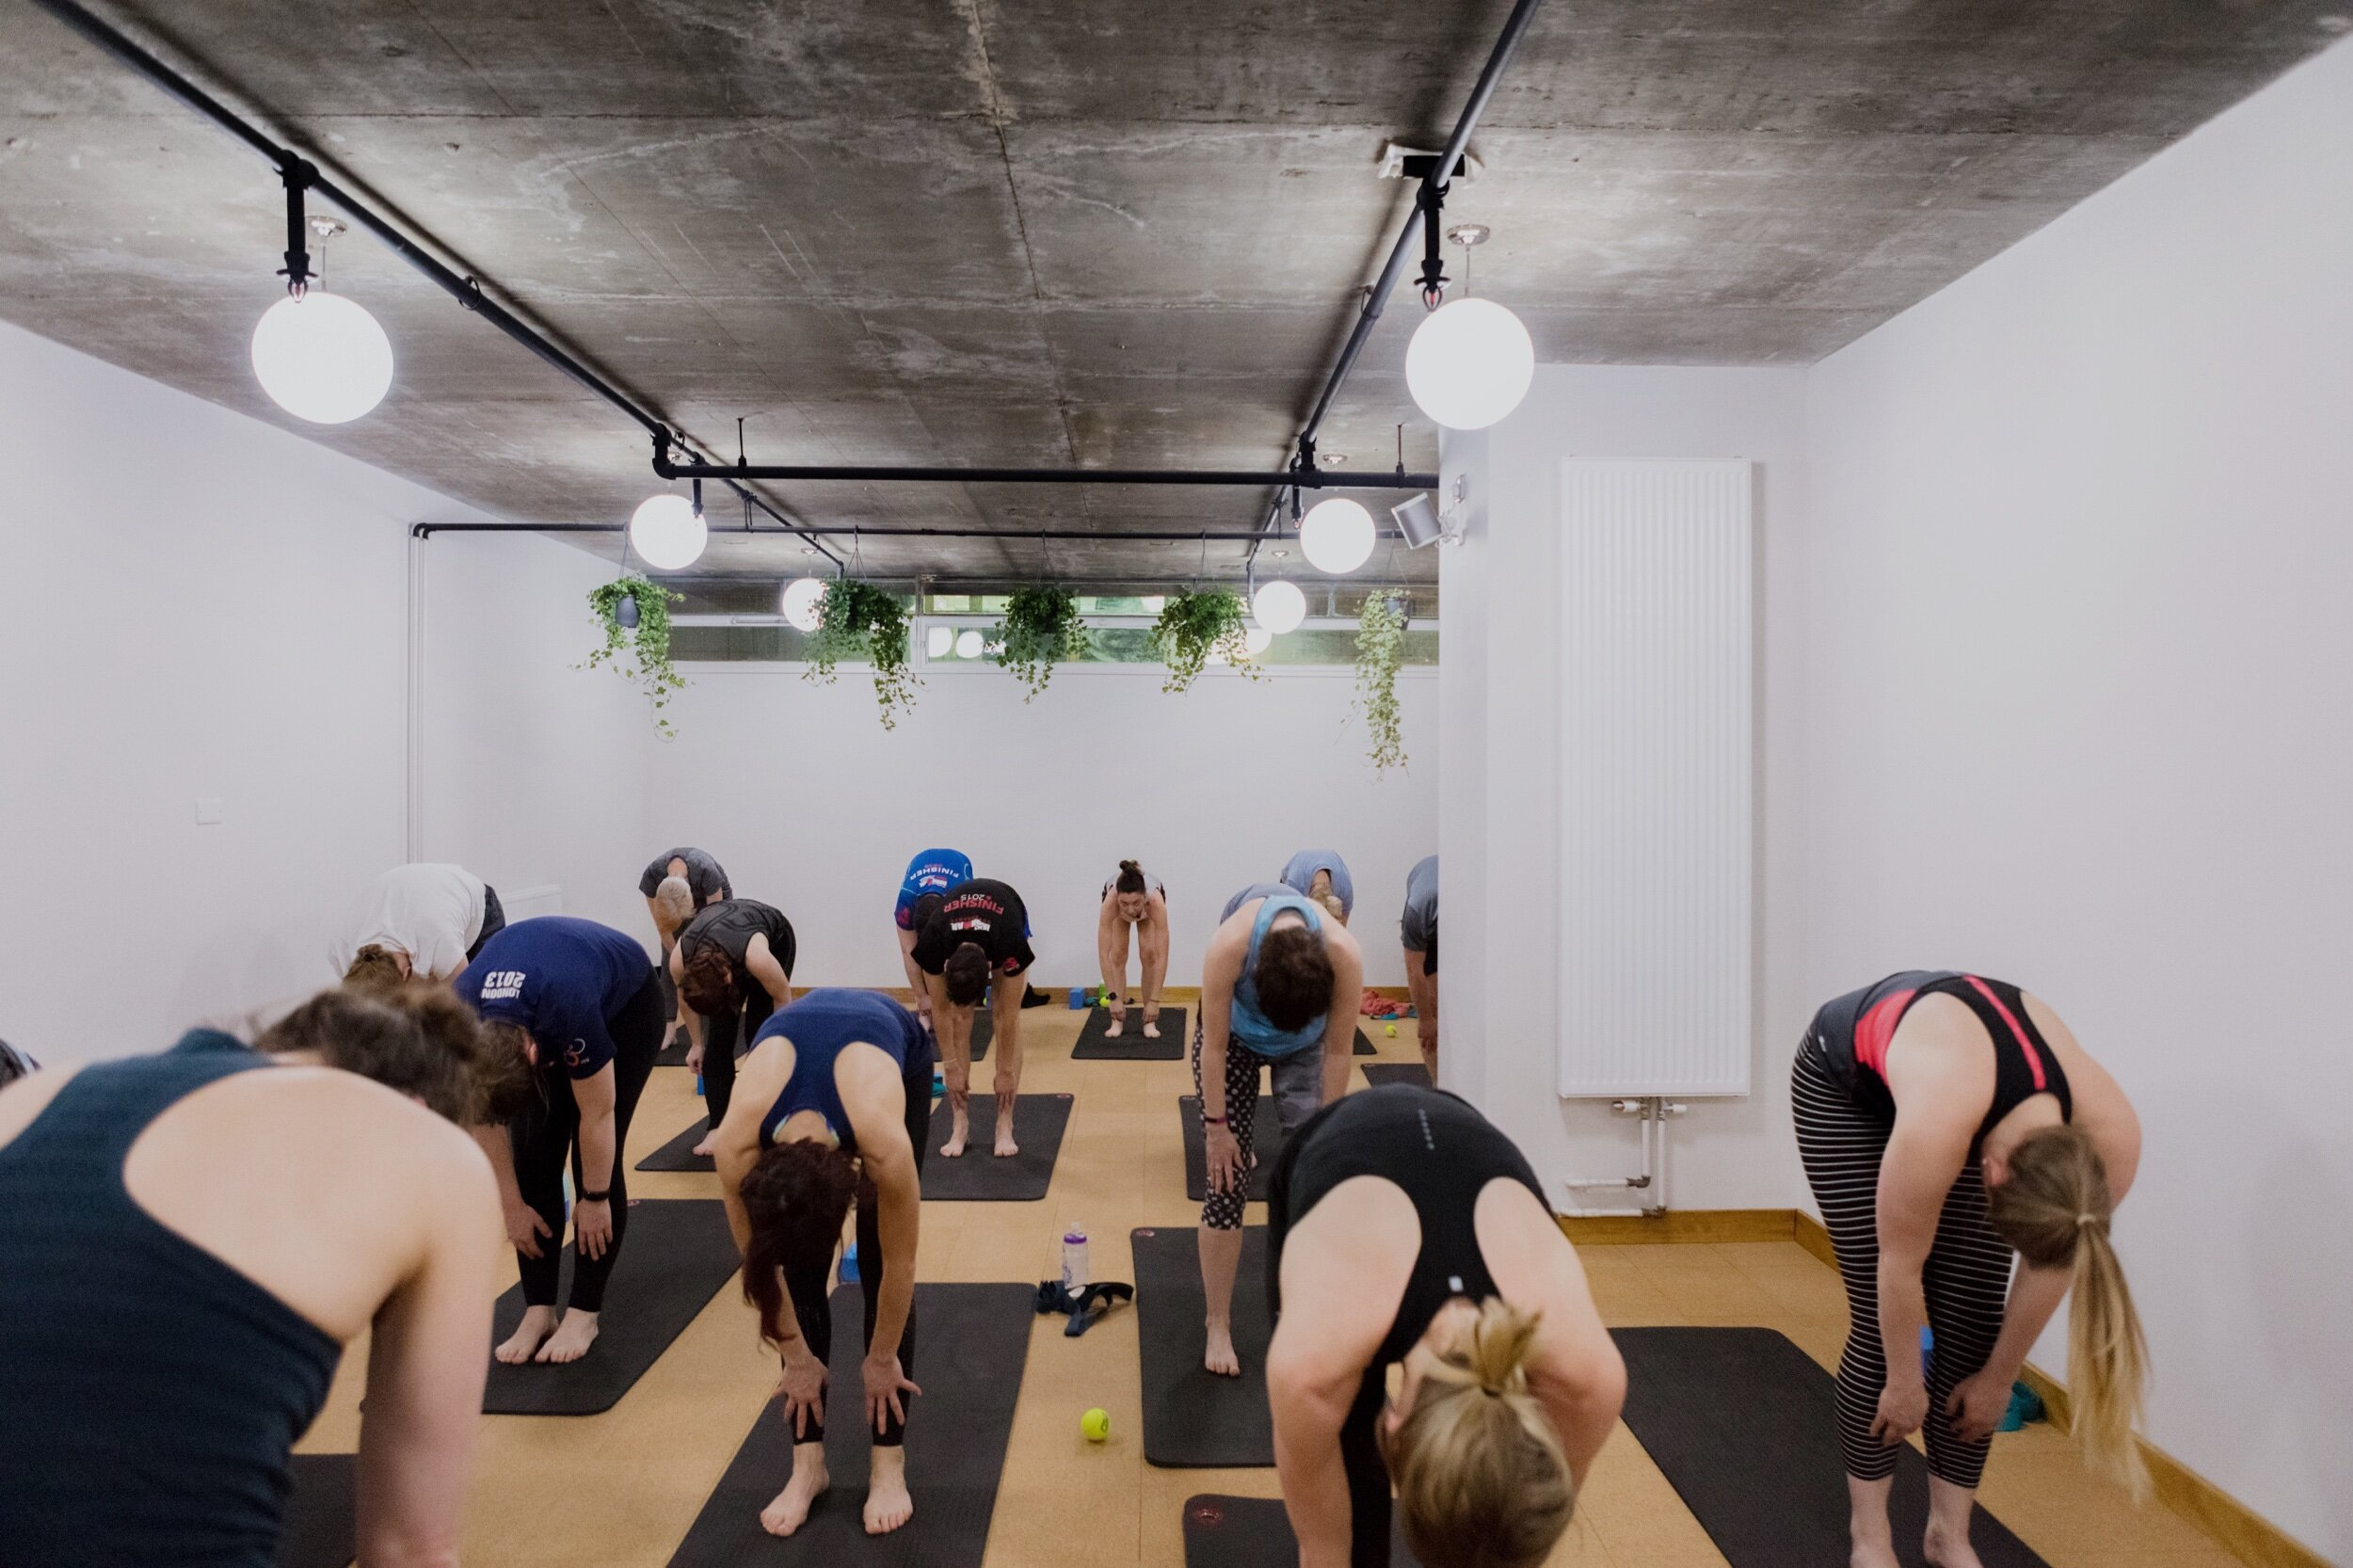 NEW CLASSES - Monday 7:30-8:30am - Power YogaHoping to start the off your week as you mean to go on? Feeling strong, energised and ready to conquer the shit that's ahead of you? You're sure going to feel powerful after Power Yoga with Luke Bradshaw every Monday. During his career as a dancer Luke worked for various contemporary dance and circus companies; his experiences in the industry strongly influence the teaching methodology for his classes in which he focuses on alignment, tone and strength.Tuesday 7:30-8:30am - BarreOur first morning Barre class has landed and it could just be the grooviest Tuesday mornin you've ever had! You may hobble down our stairs with the shaky thighs but you'll be feeling that beautiful burn in the bum all day long. Open to all levels but expect to sweat!Thursday 7:30-8:30 - Gentle VinyasaKat has been teaching with us for a few weeks now and OH MY is she amazing! Expect a gentle flow that builds to a fiery crescendo. A solid backing track sets the scene and hands on assists are readily available. Kat welcomes students of all levels to feel their way through their practise, and get to know themselves a little better.